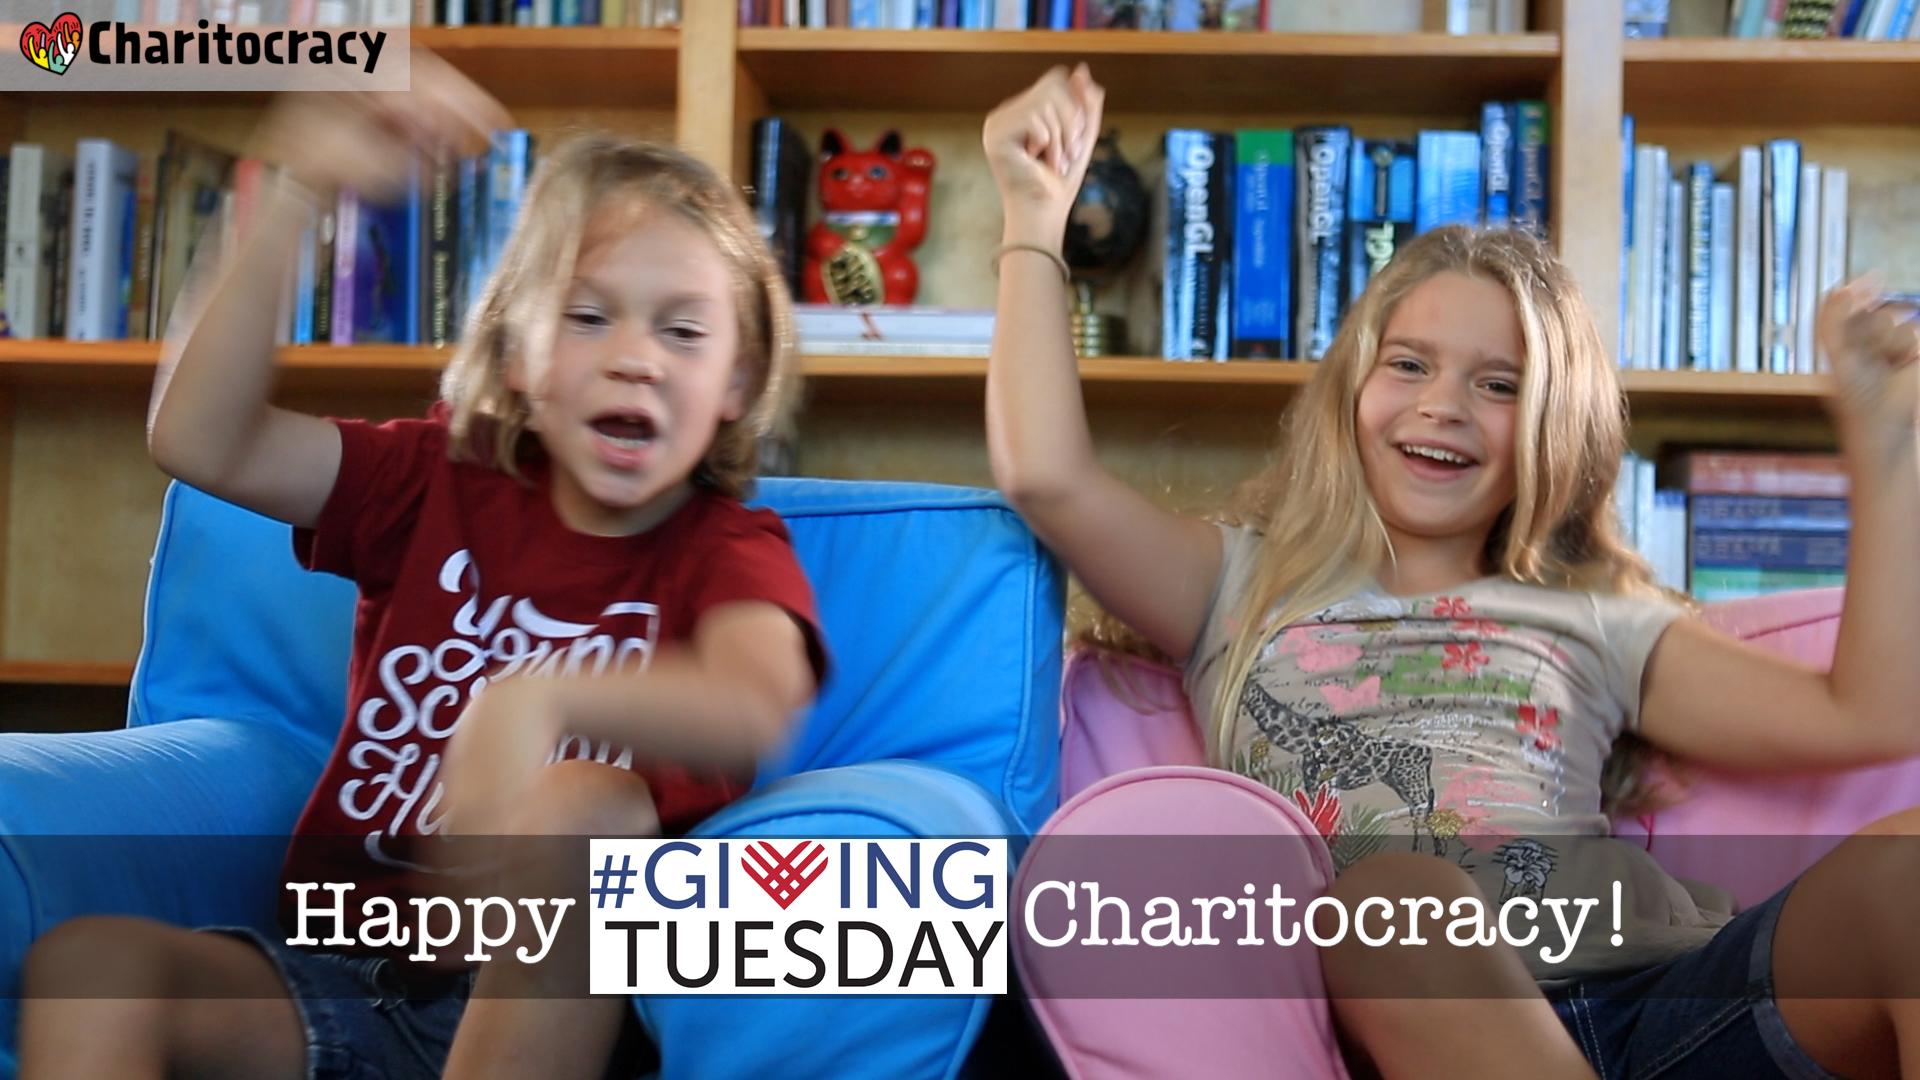 Happy Giving Tuesday, Charitocracy!